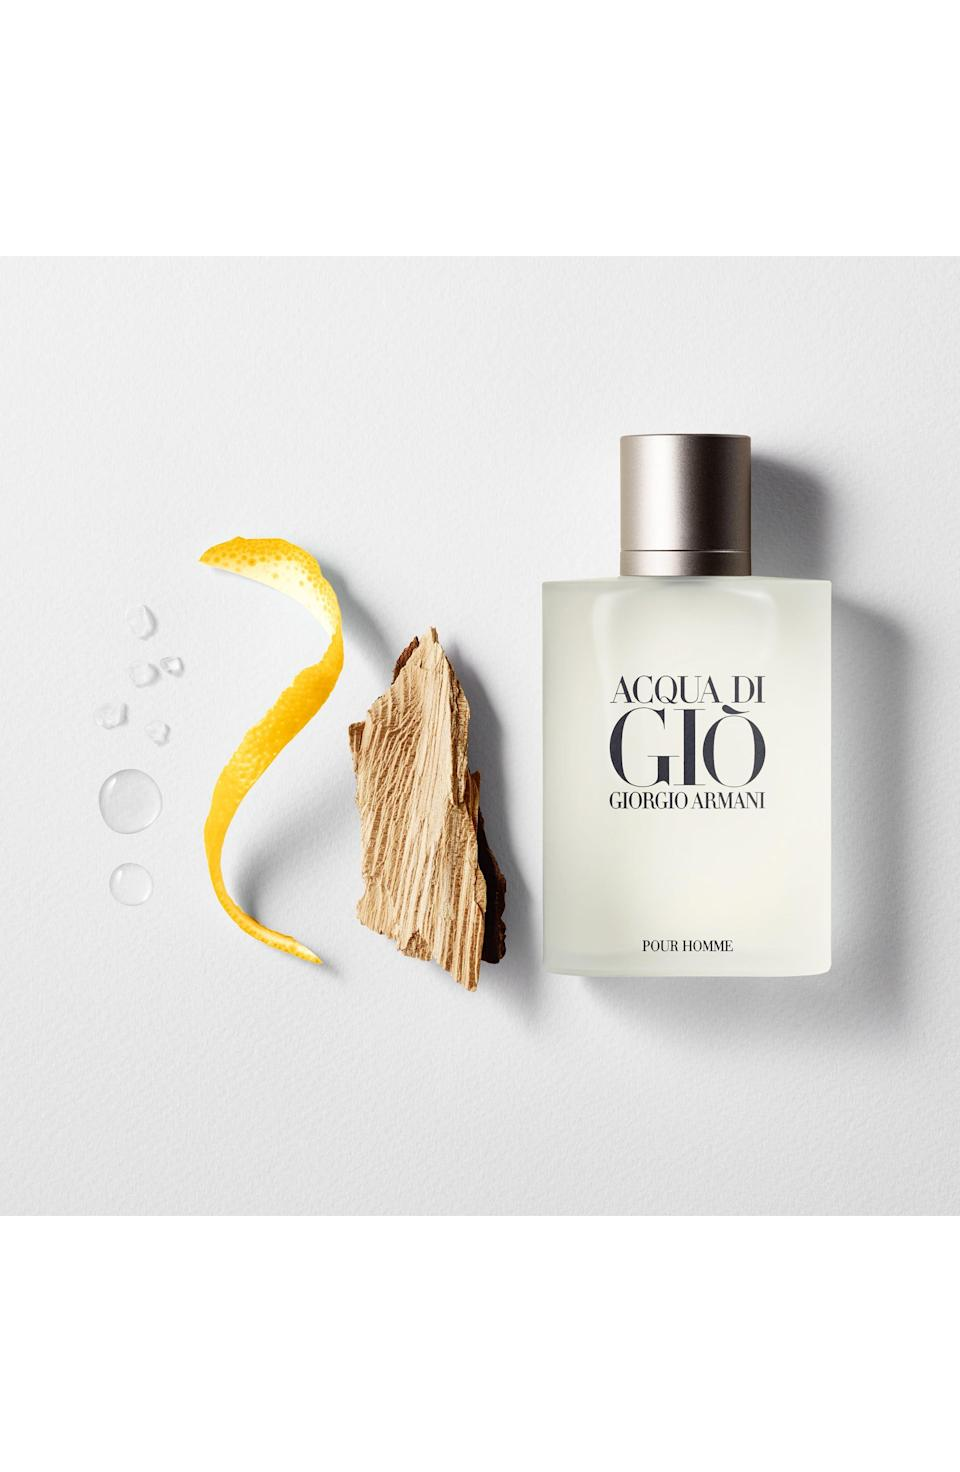 """<p><strong>GIORGIO ARMANI</strong></p><p>nordstrom.com</p><p><strong>$50.00</strong></p><p><a href=""""https://go.redirectingat.com?id=74968X1596630&url=https%3A%2F%2Fshop.nordstrom.com%2Fs%2Facqua-di-gio-pour-homme-eau-de-toilette%2F2833888&sref=https%3A%2F%2Fwww.goodhousekeeping.com%2Fholidays%2Ffathers-day%2Fg21205637%2Ffathers-day-gifts-for-grandpa%2F"""" rel=""""nofollow noopener"""" target=""""_blank"""" data-ylk=""""slk:Shop Now"""" class=""""link rapid-noclick-resp"""">Shop Now</a></p><p>The brand describes the scent as """"pure freshness and warmth of the Mediterranean sea,"""" while reviewers say it's a """"well-balanced"""" scent. Bottles start at $50.</p>"""